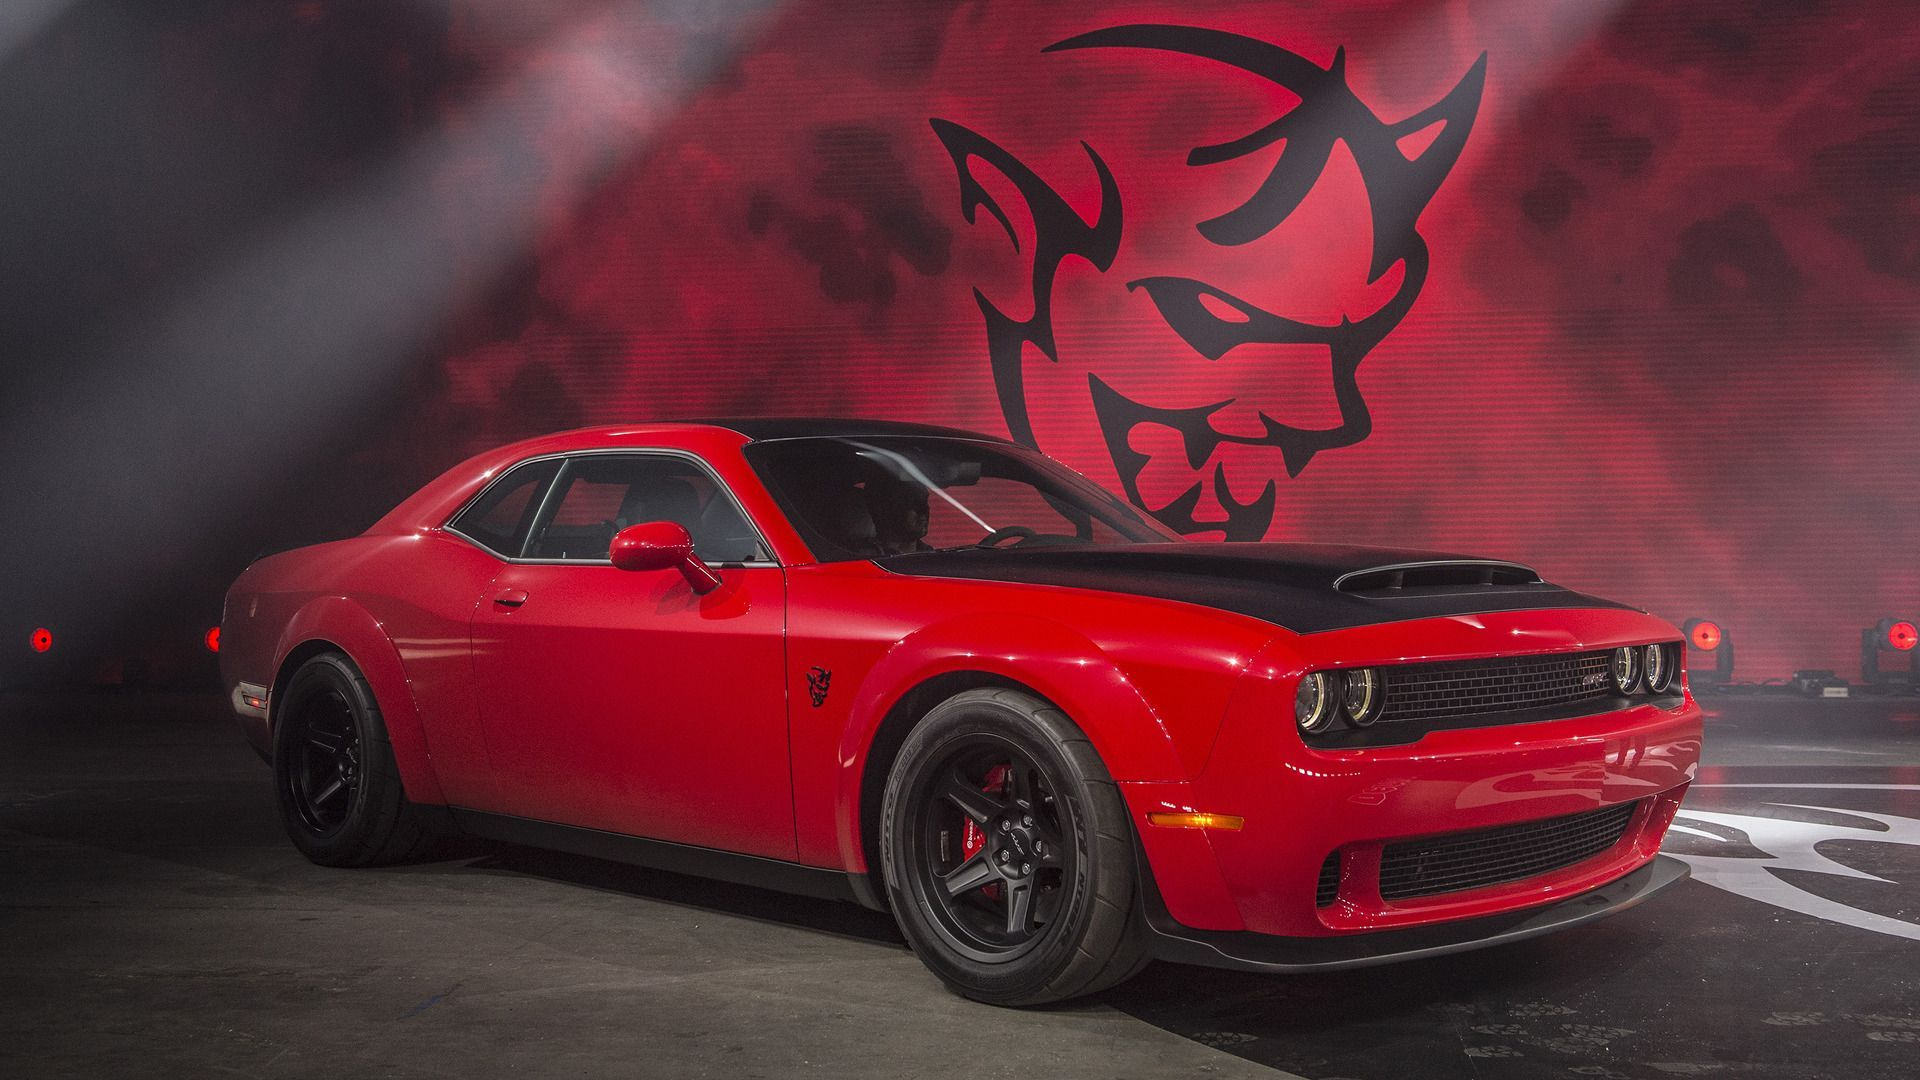 2018 Dodge Challenger Srt Demon Wallpaper 2018 Wallpapers Hd Cool American Cars Pinterest